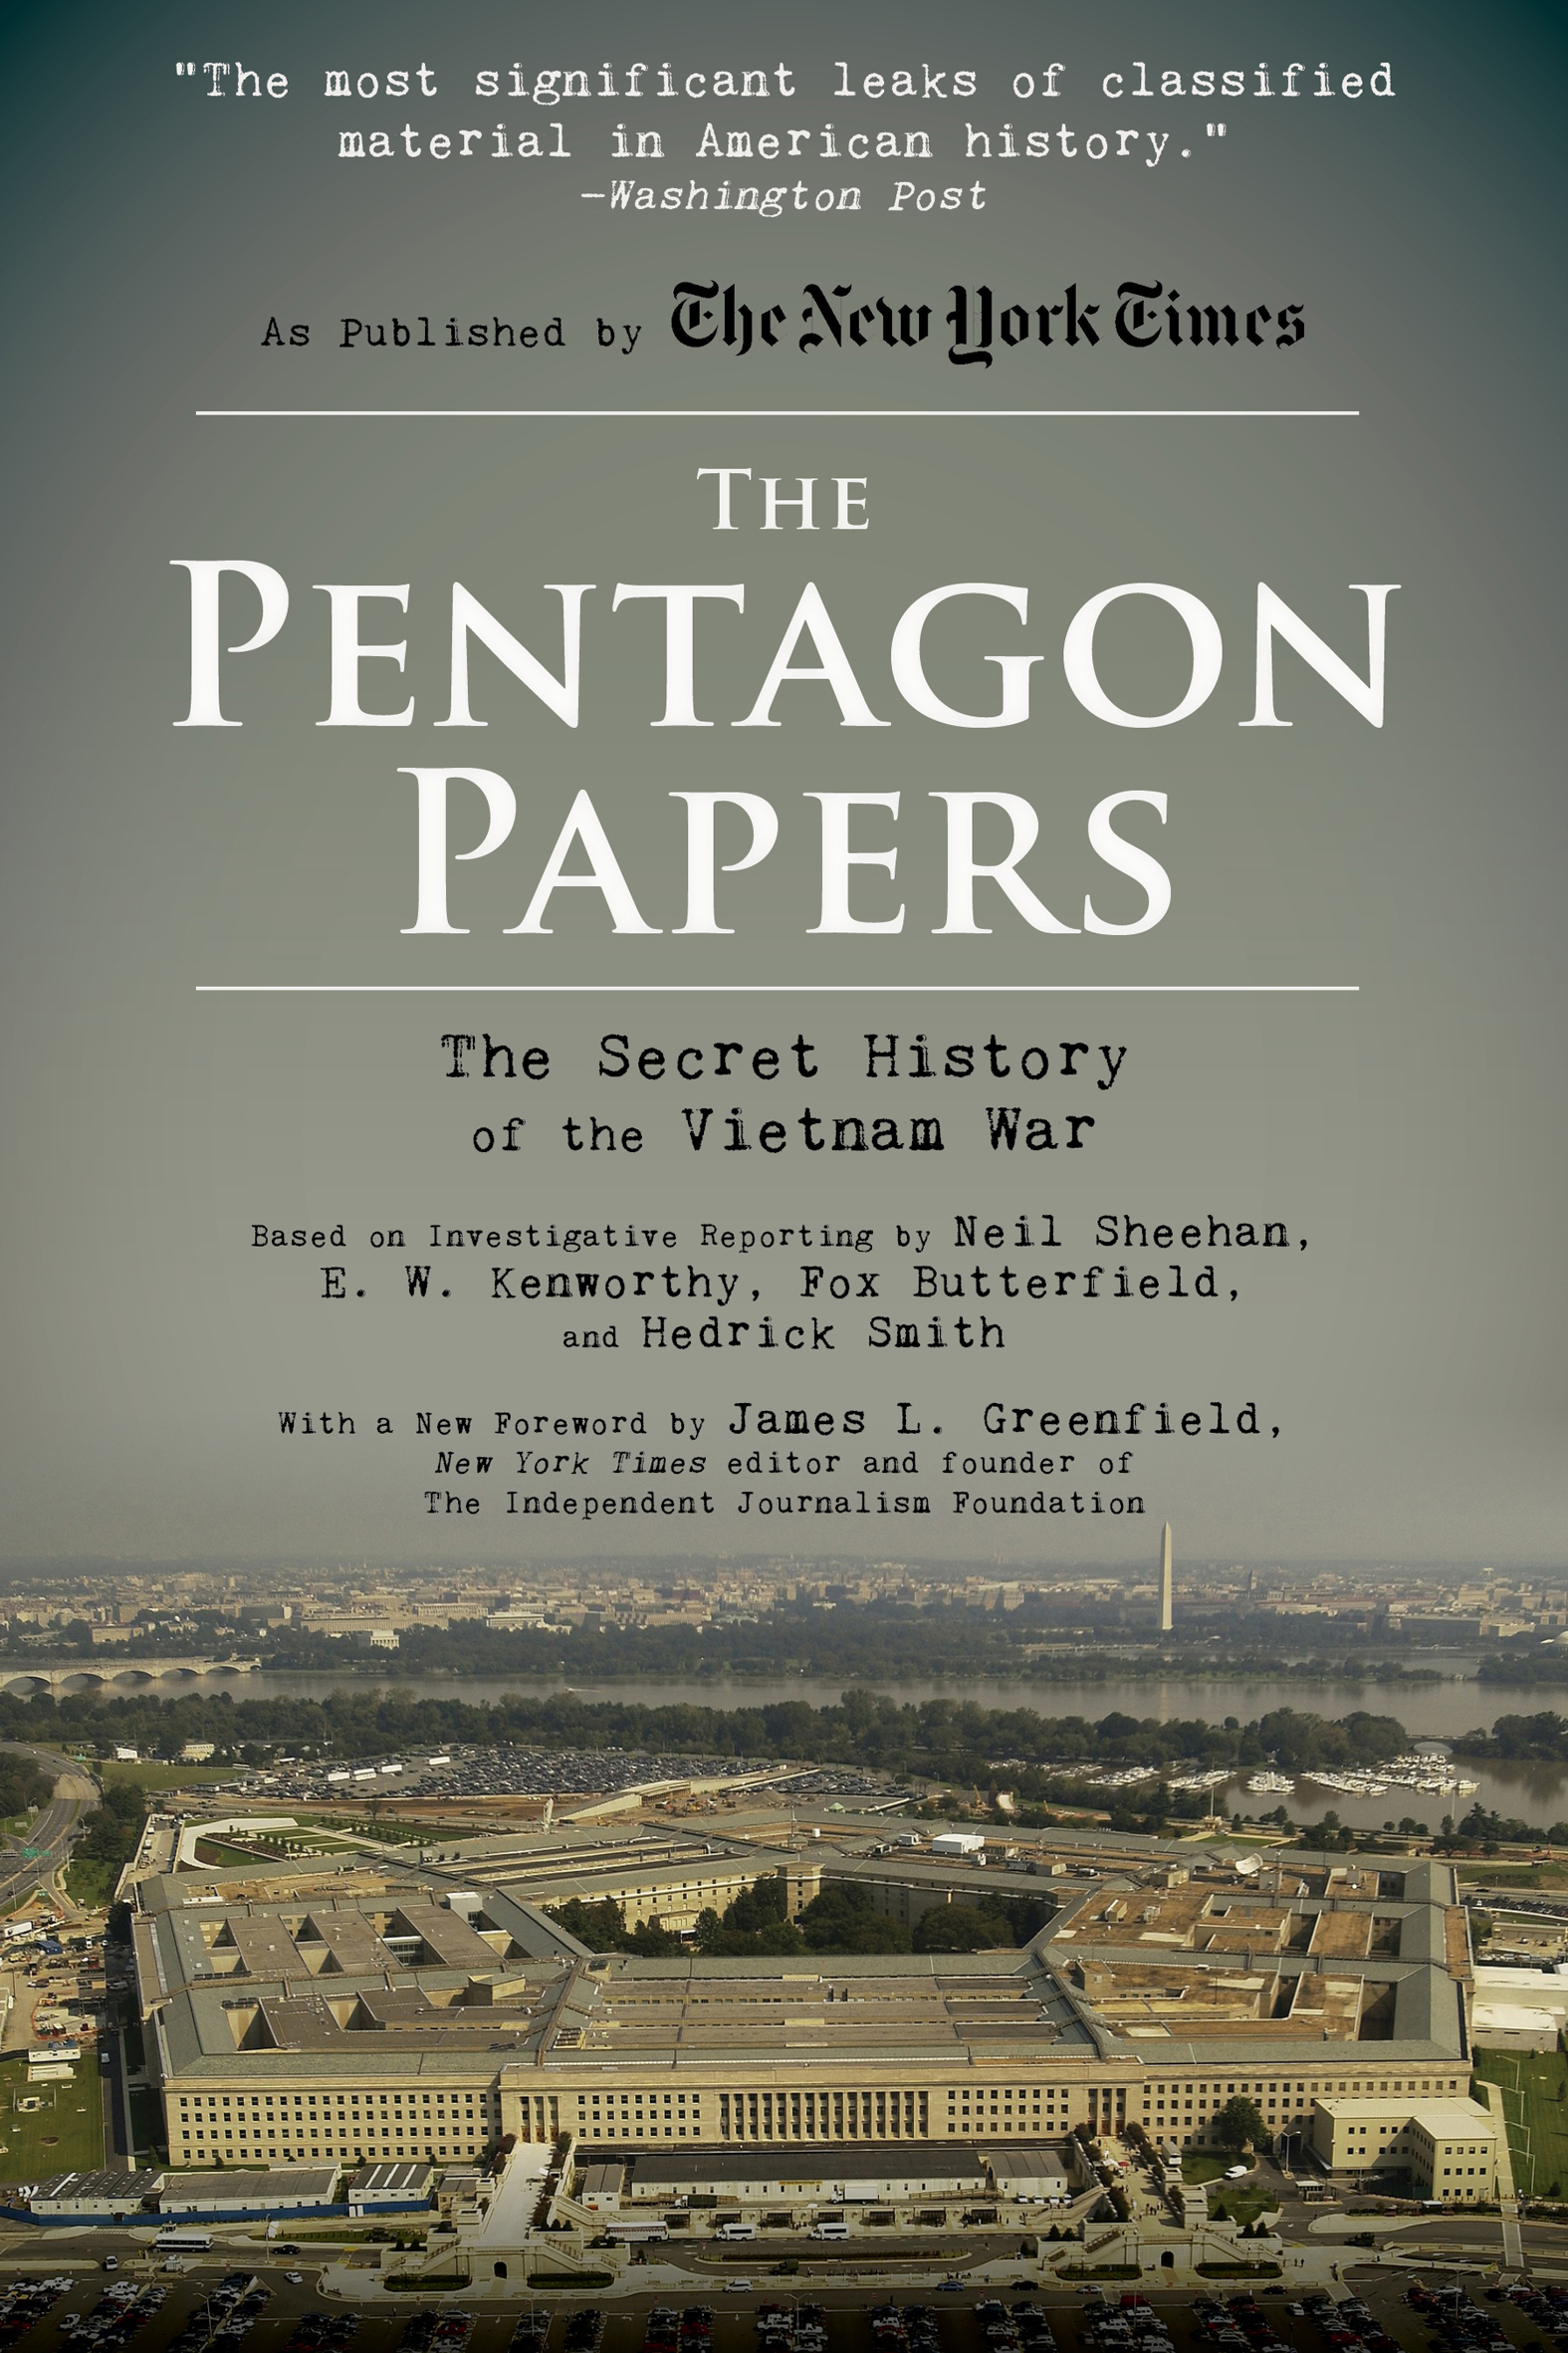 Cover Image of The Pentagon Papers